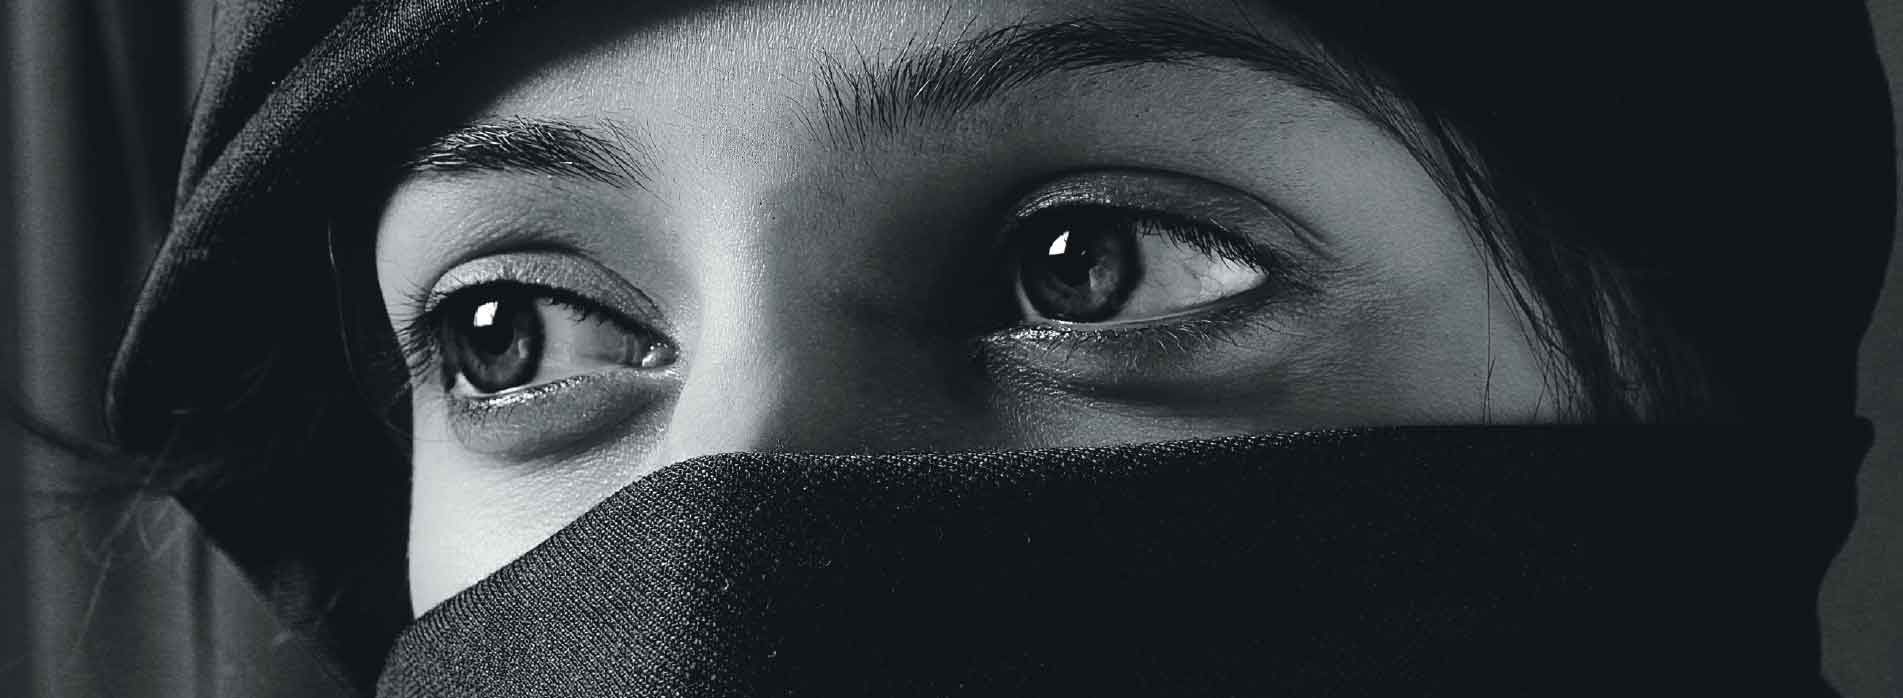 Ban the Burqa, and Let Women 'Breathe'